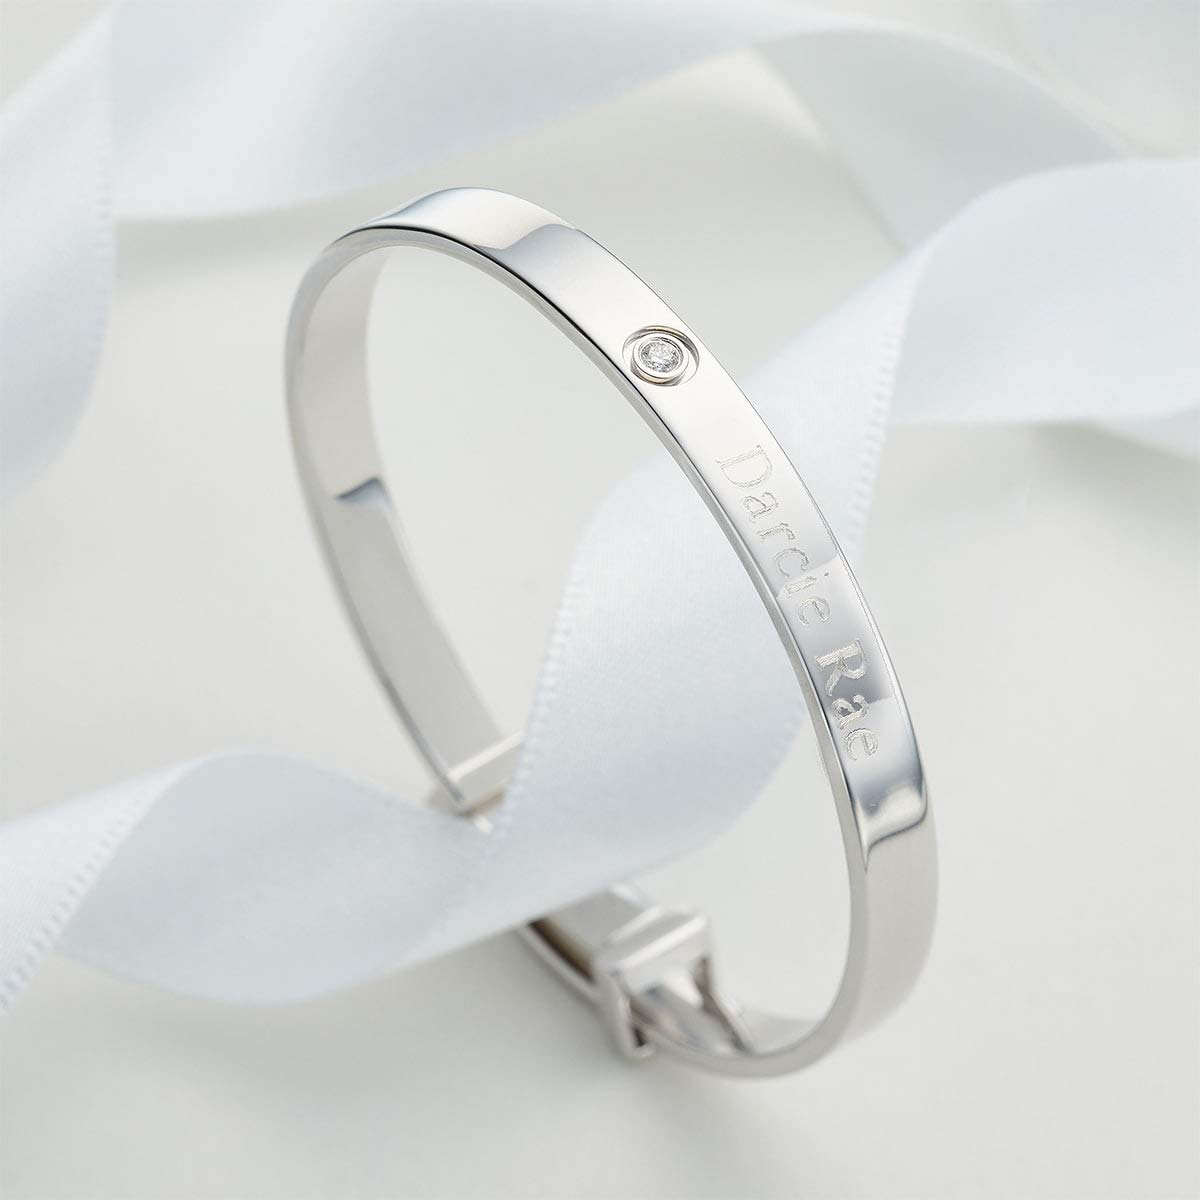 Molly B London | Personalized 925 Sterling Silver Baby's April Diamond Birthstone Baptism Bangle by Molly B London (Image #2)